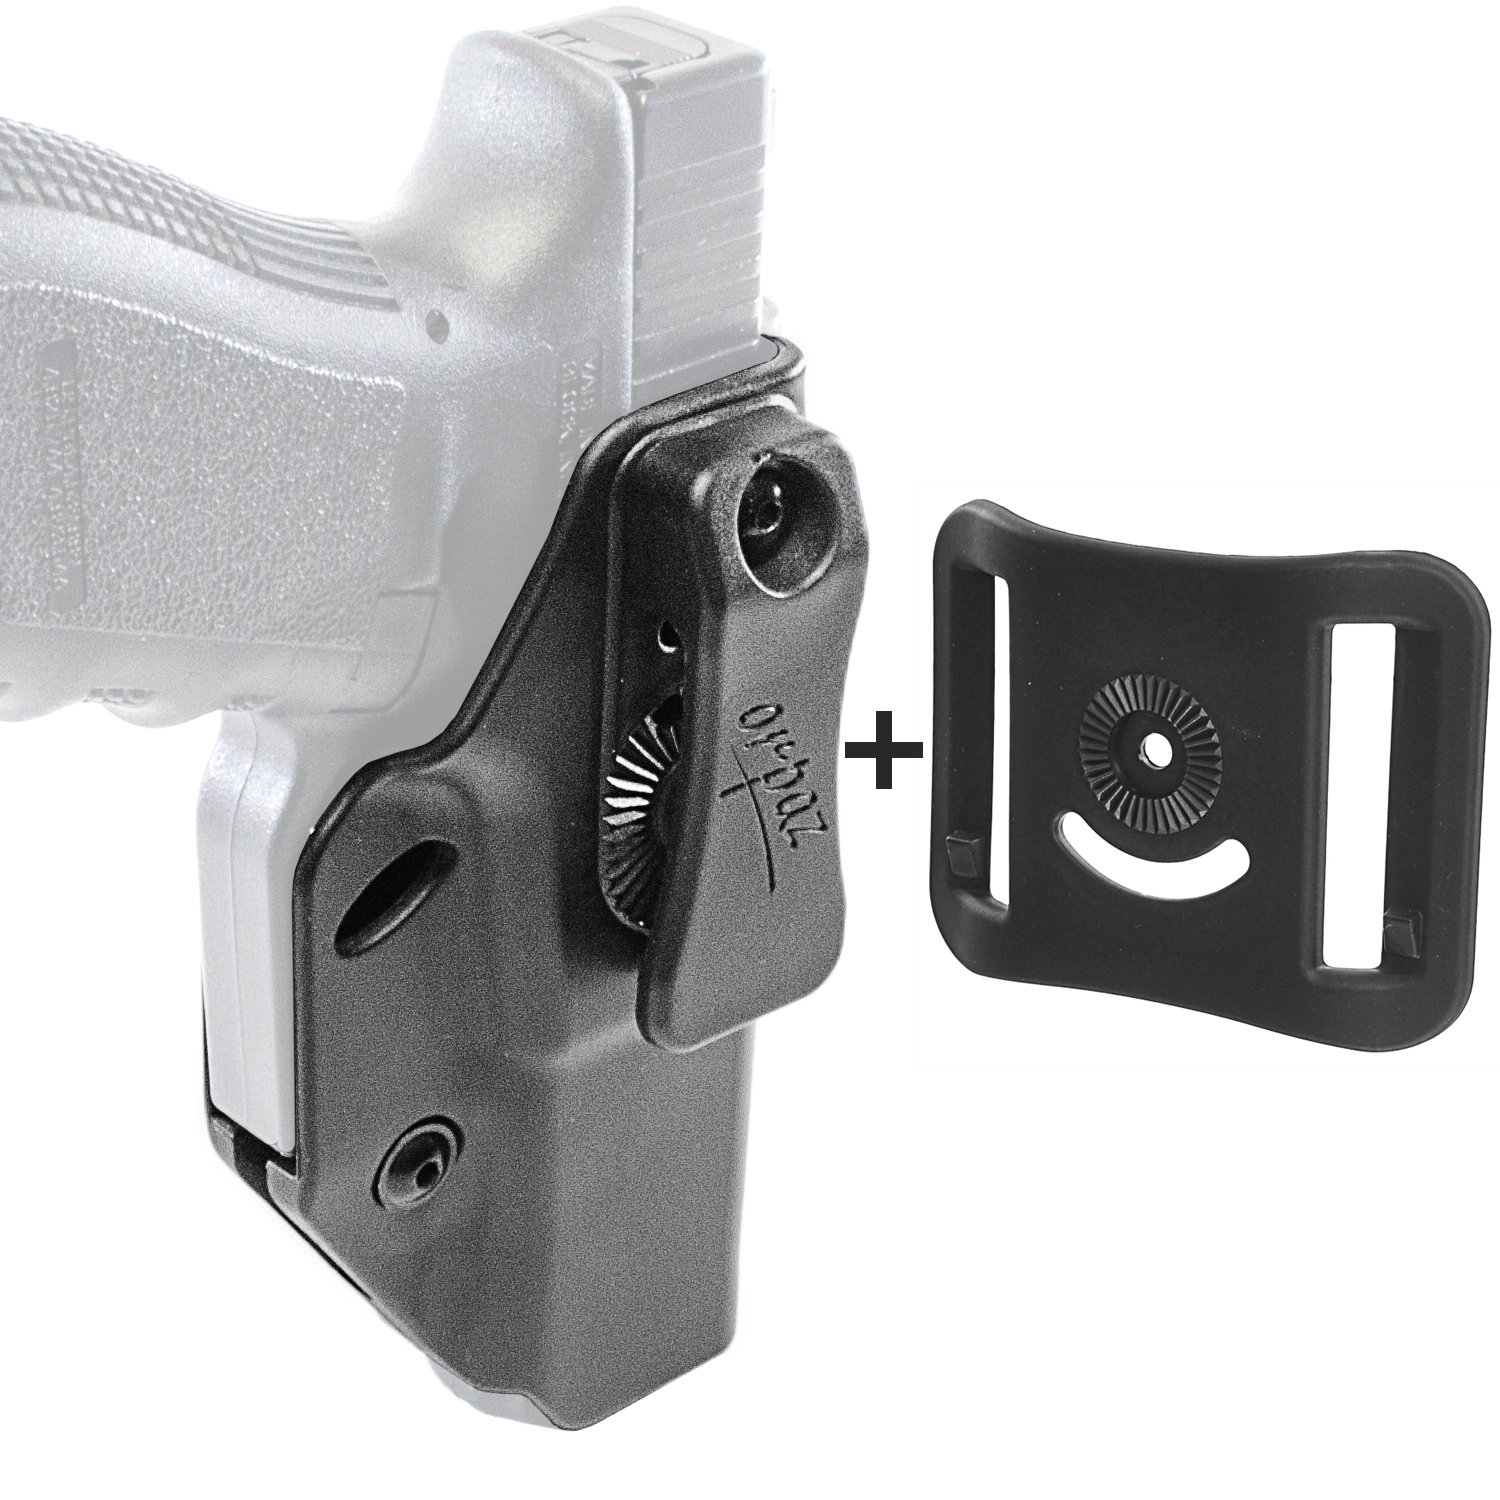 Orpaz Glock 19, 17, 26 Concealed Carry Holster IWB Holster & OWB Belt Attachment by Orpaz